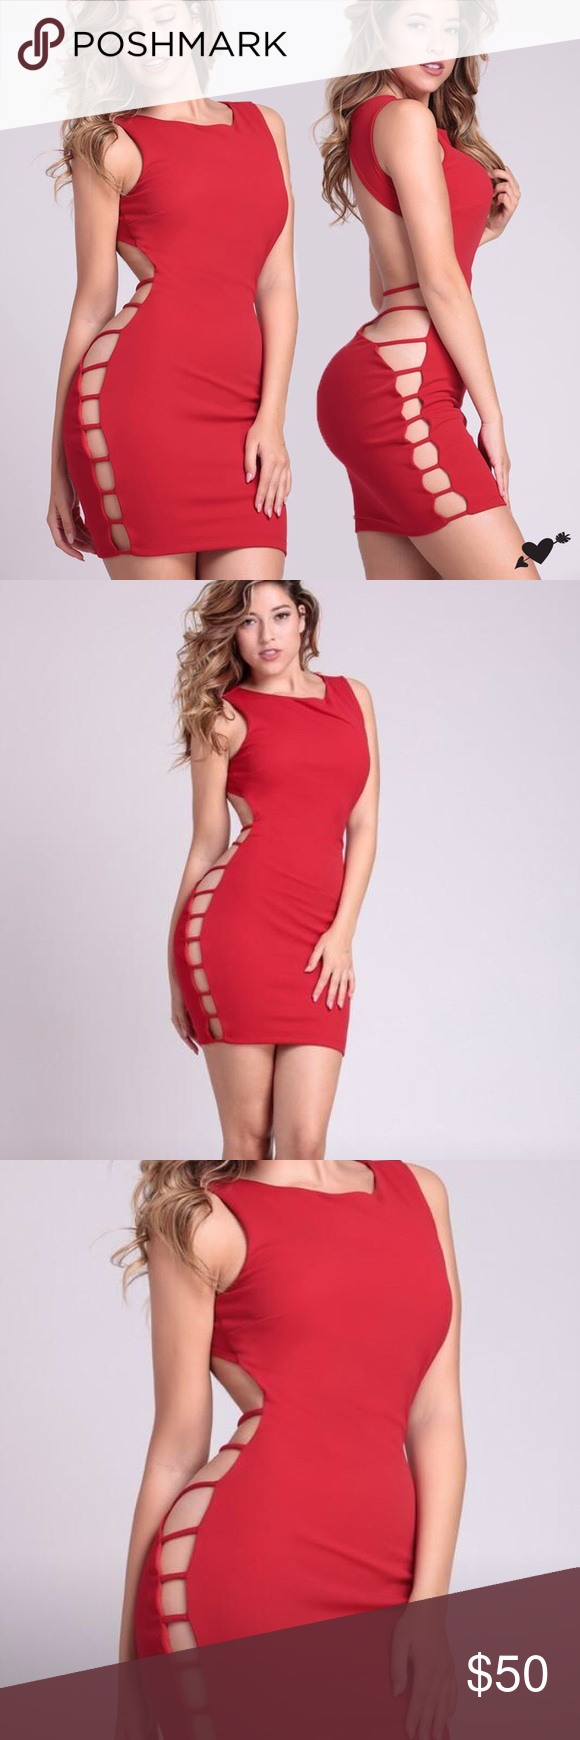 f8d46f4069a RED HOT OPEN BACK BODYCON MINI DRESS Stand out from the crowd with this sexy  little